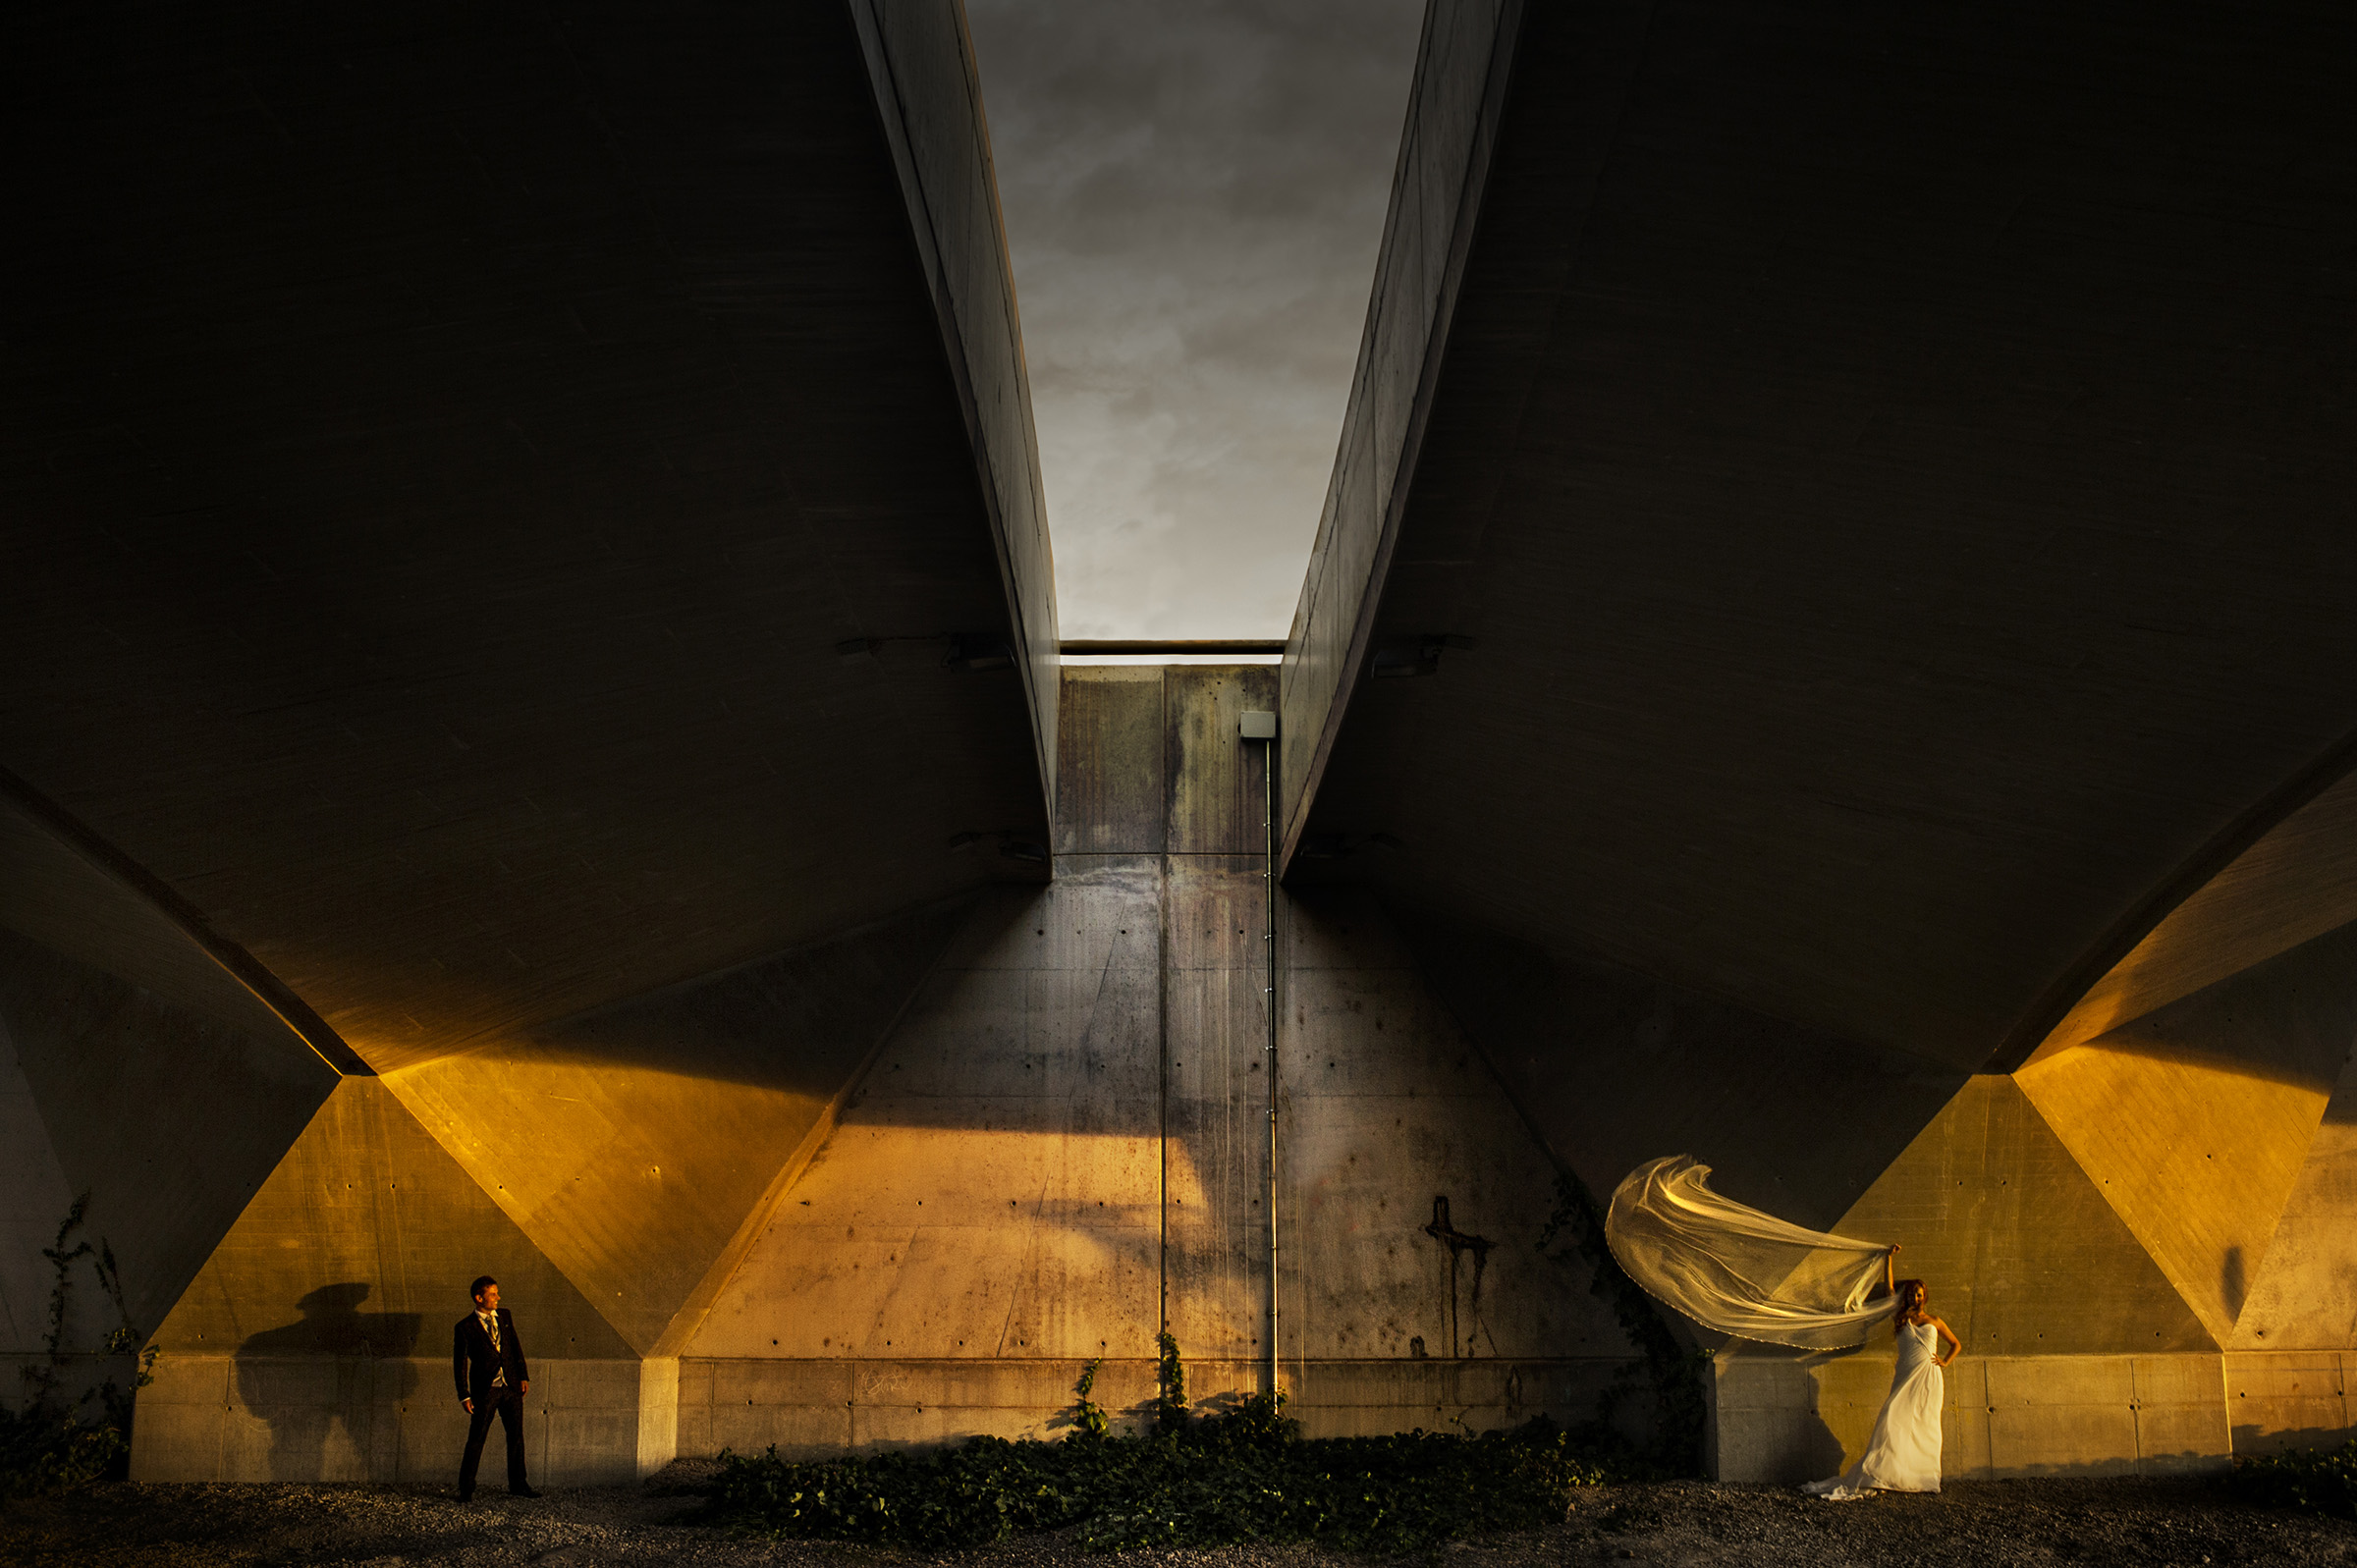 couple-in-dramatic-architecture-and-lighting-lax-photography